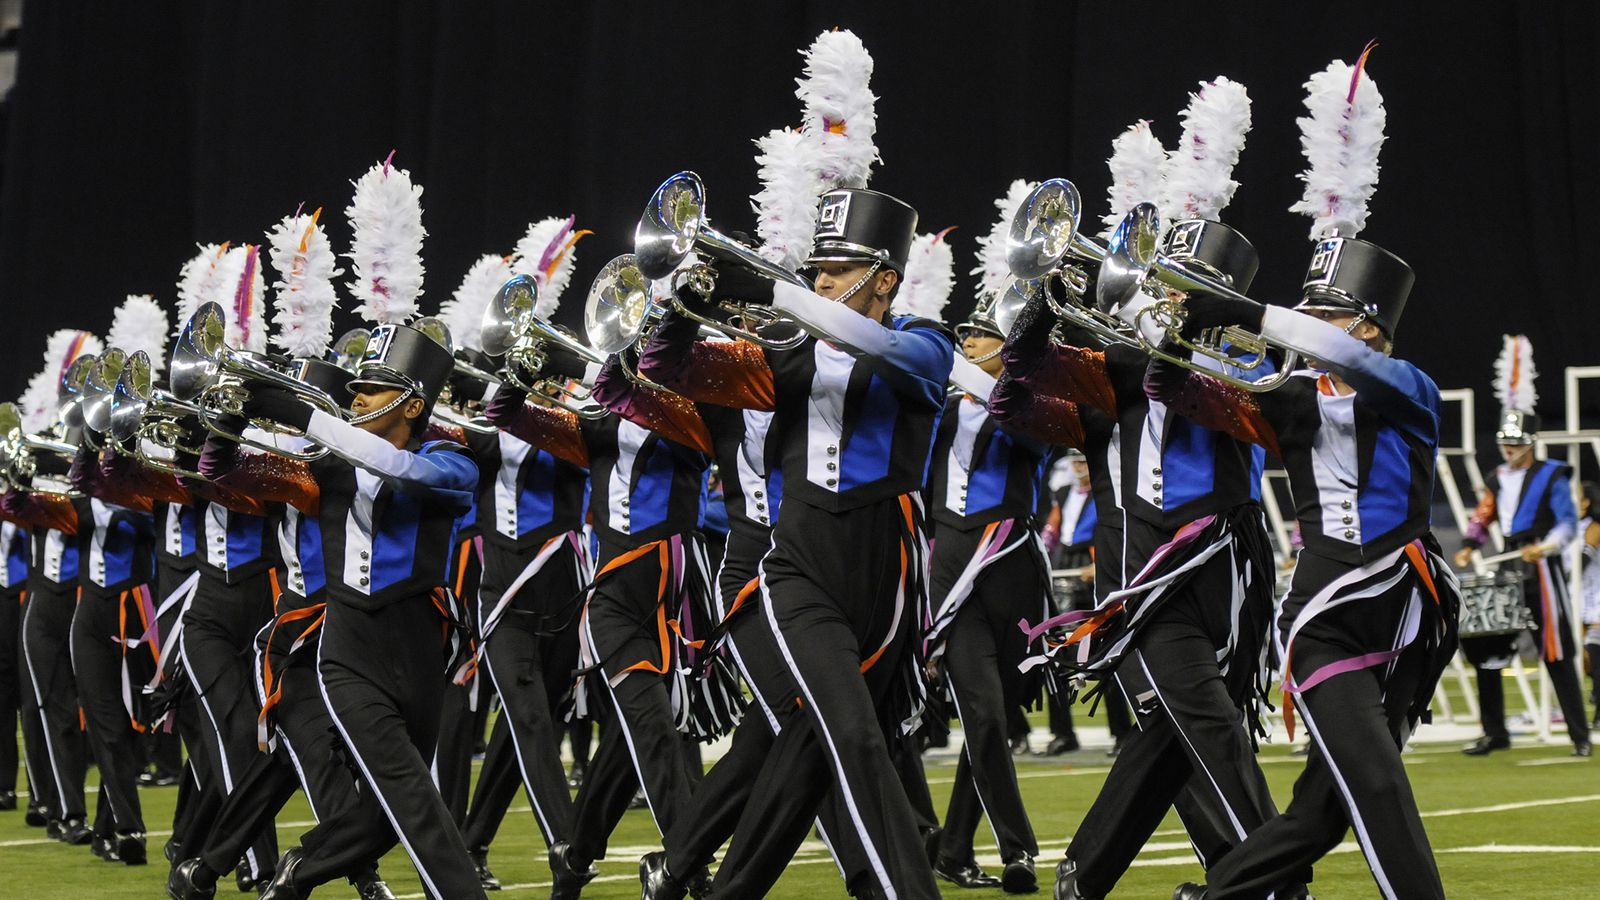 Drum_corps_international_2015_world_champion_blue_devils.0